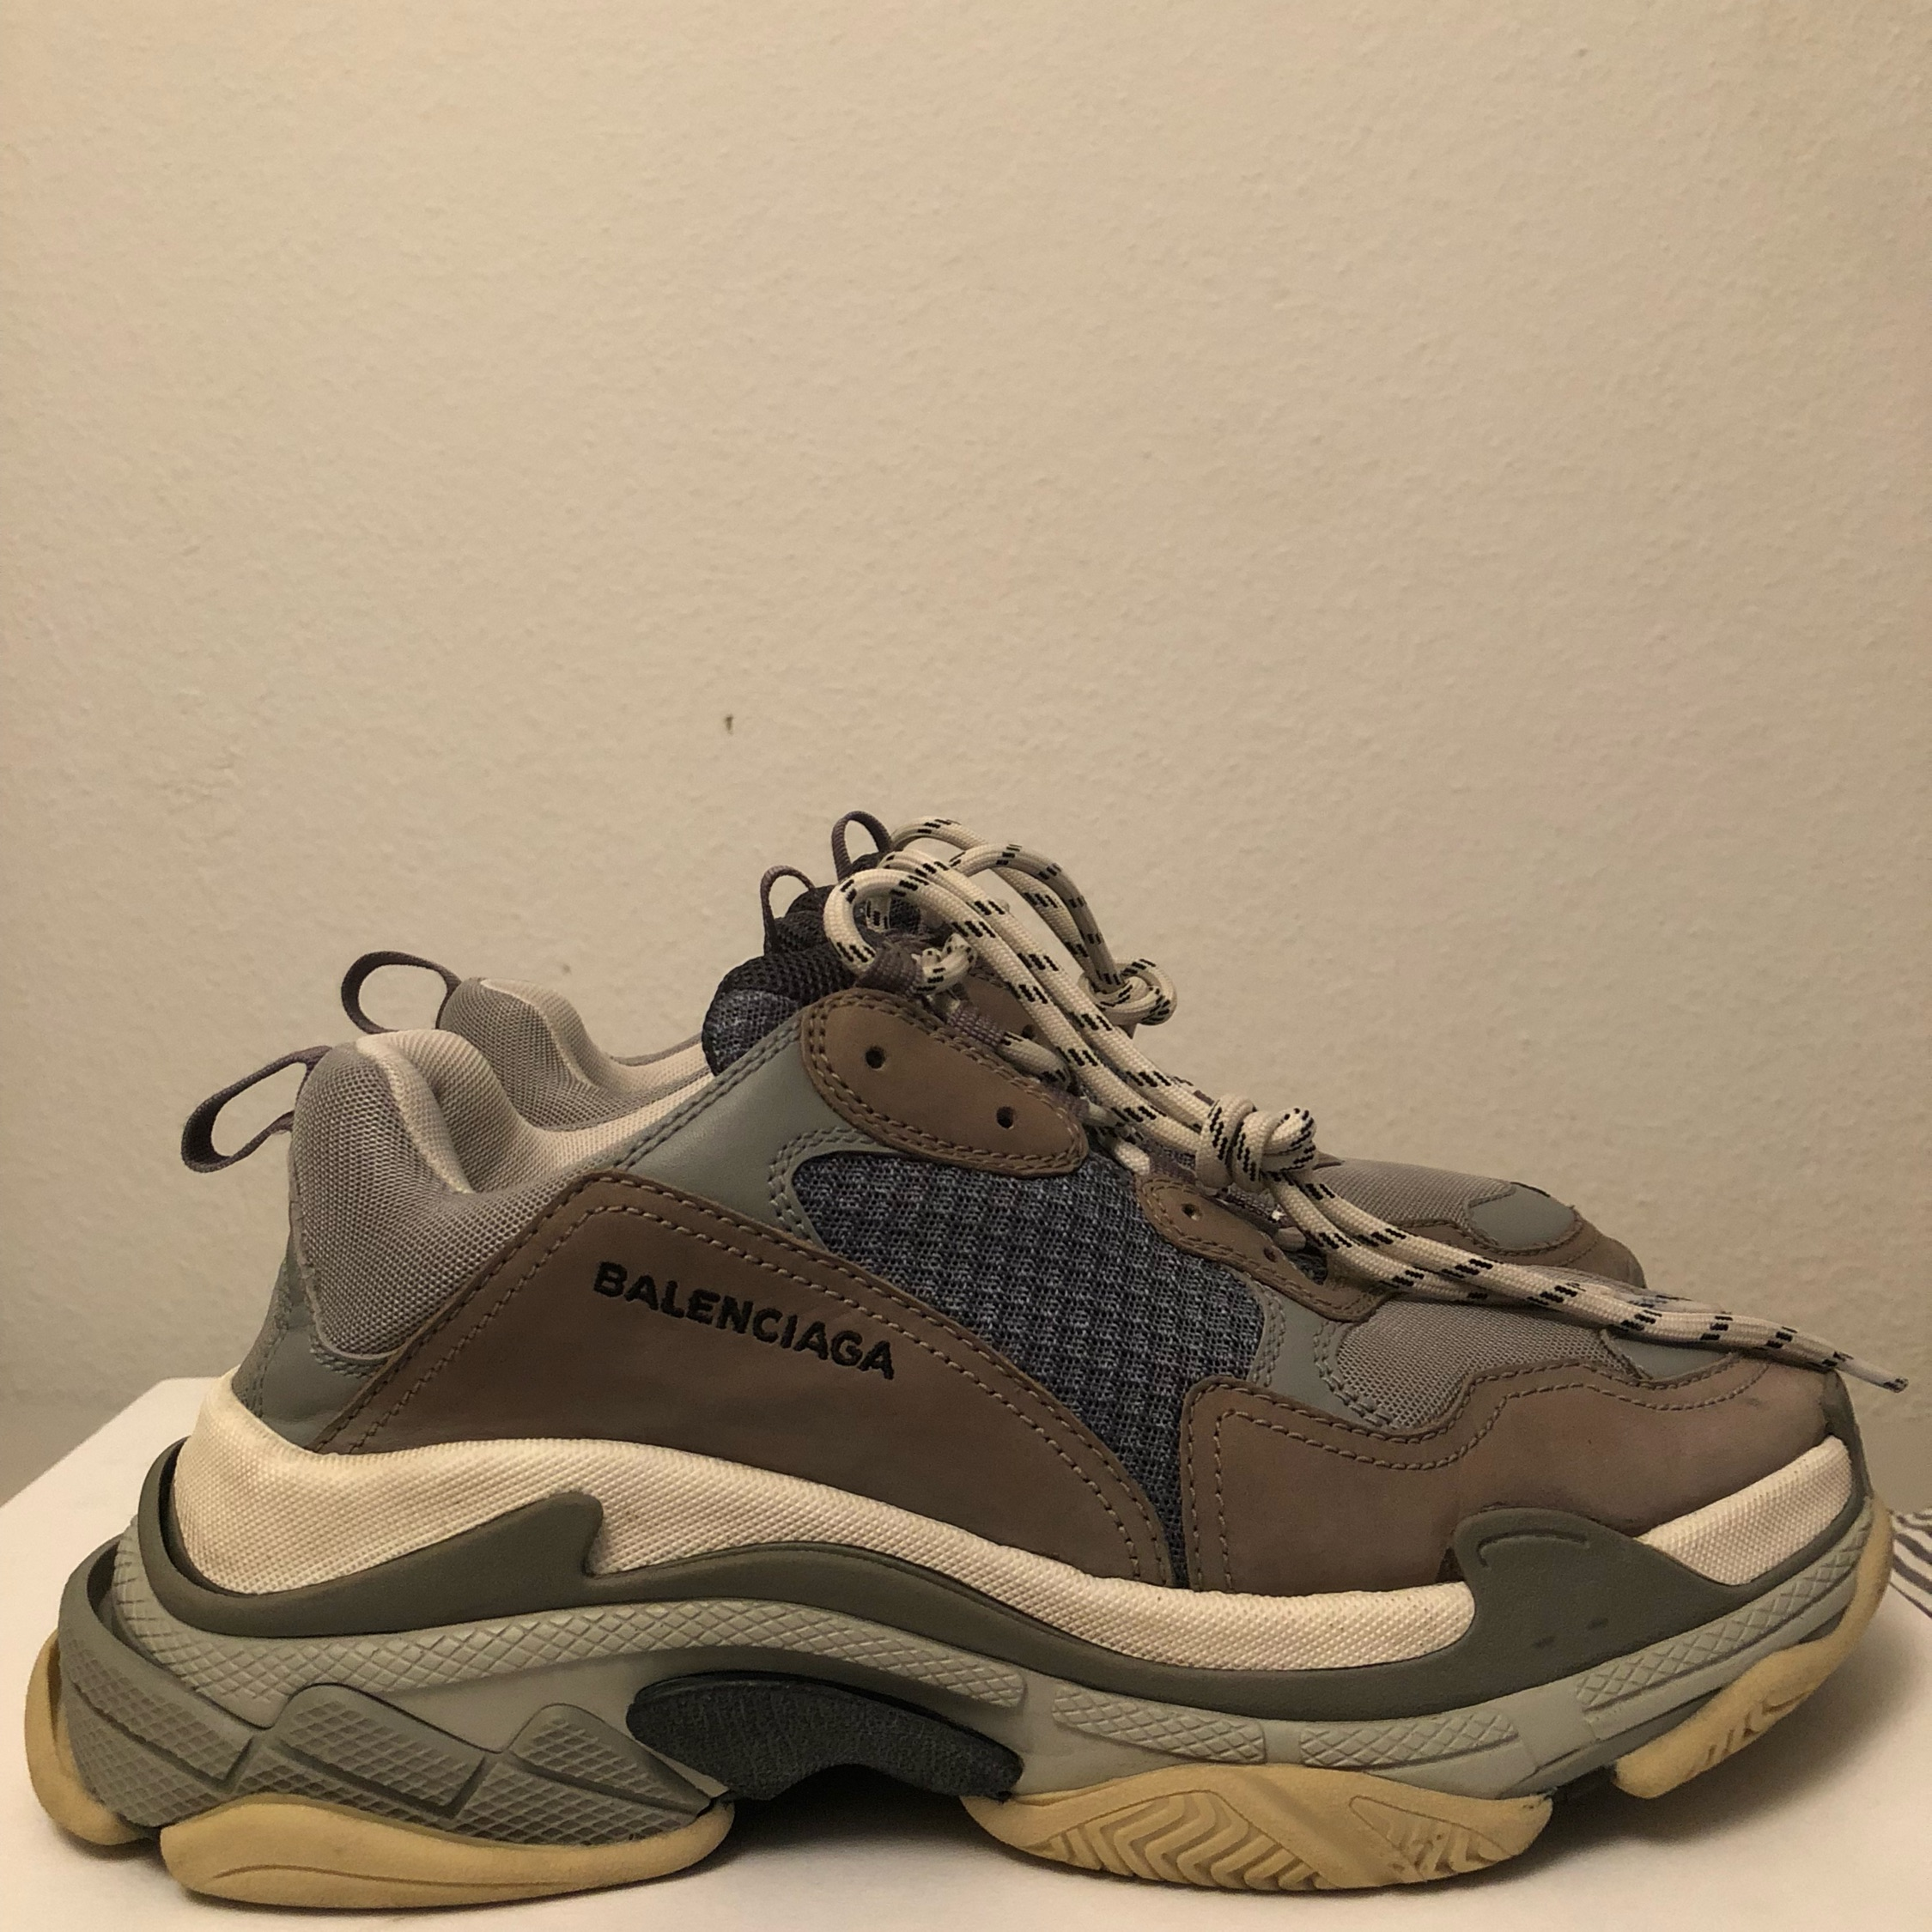 Triple S Trainers Bicolour Grey Blue White for Balenciaga